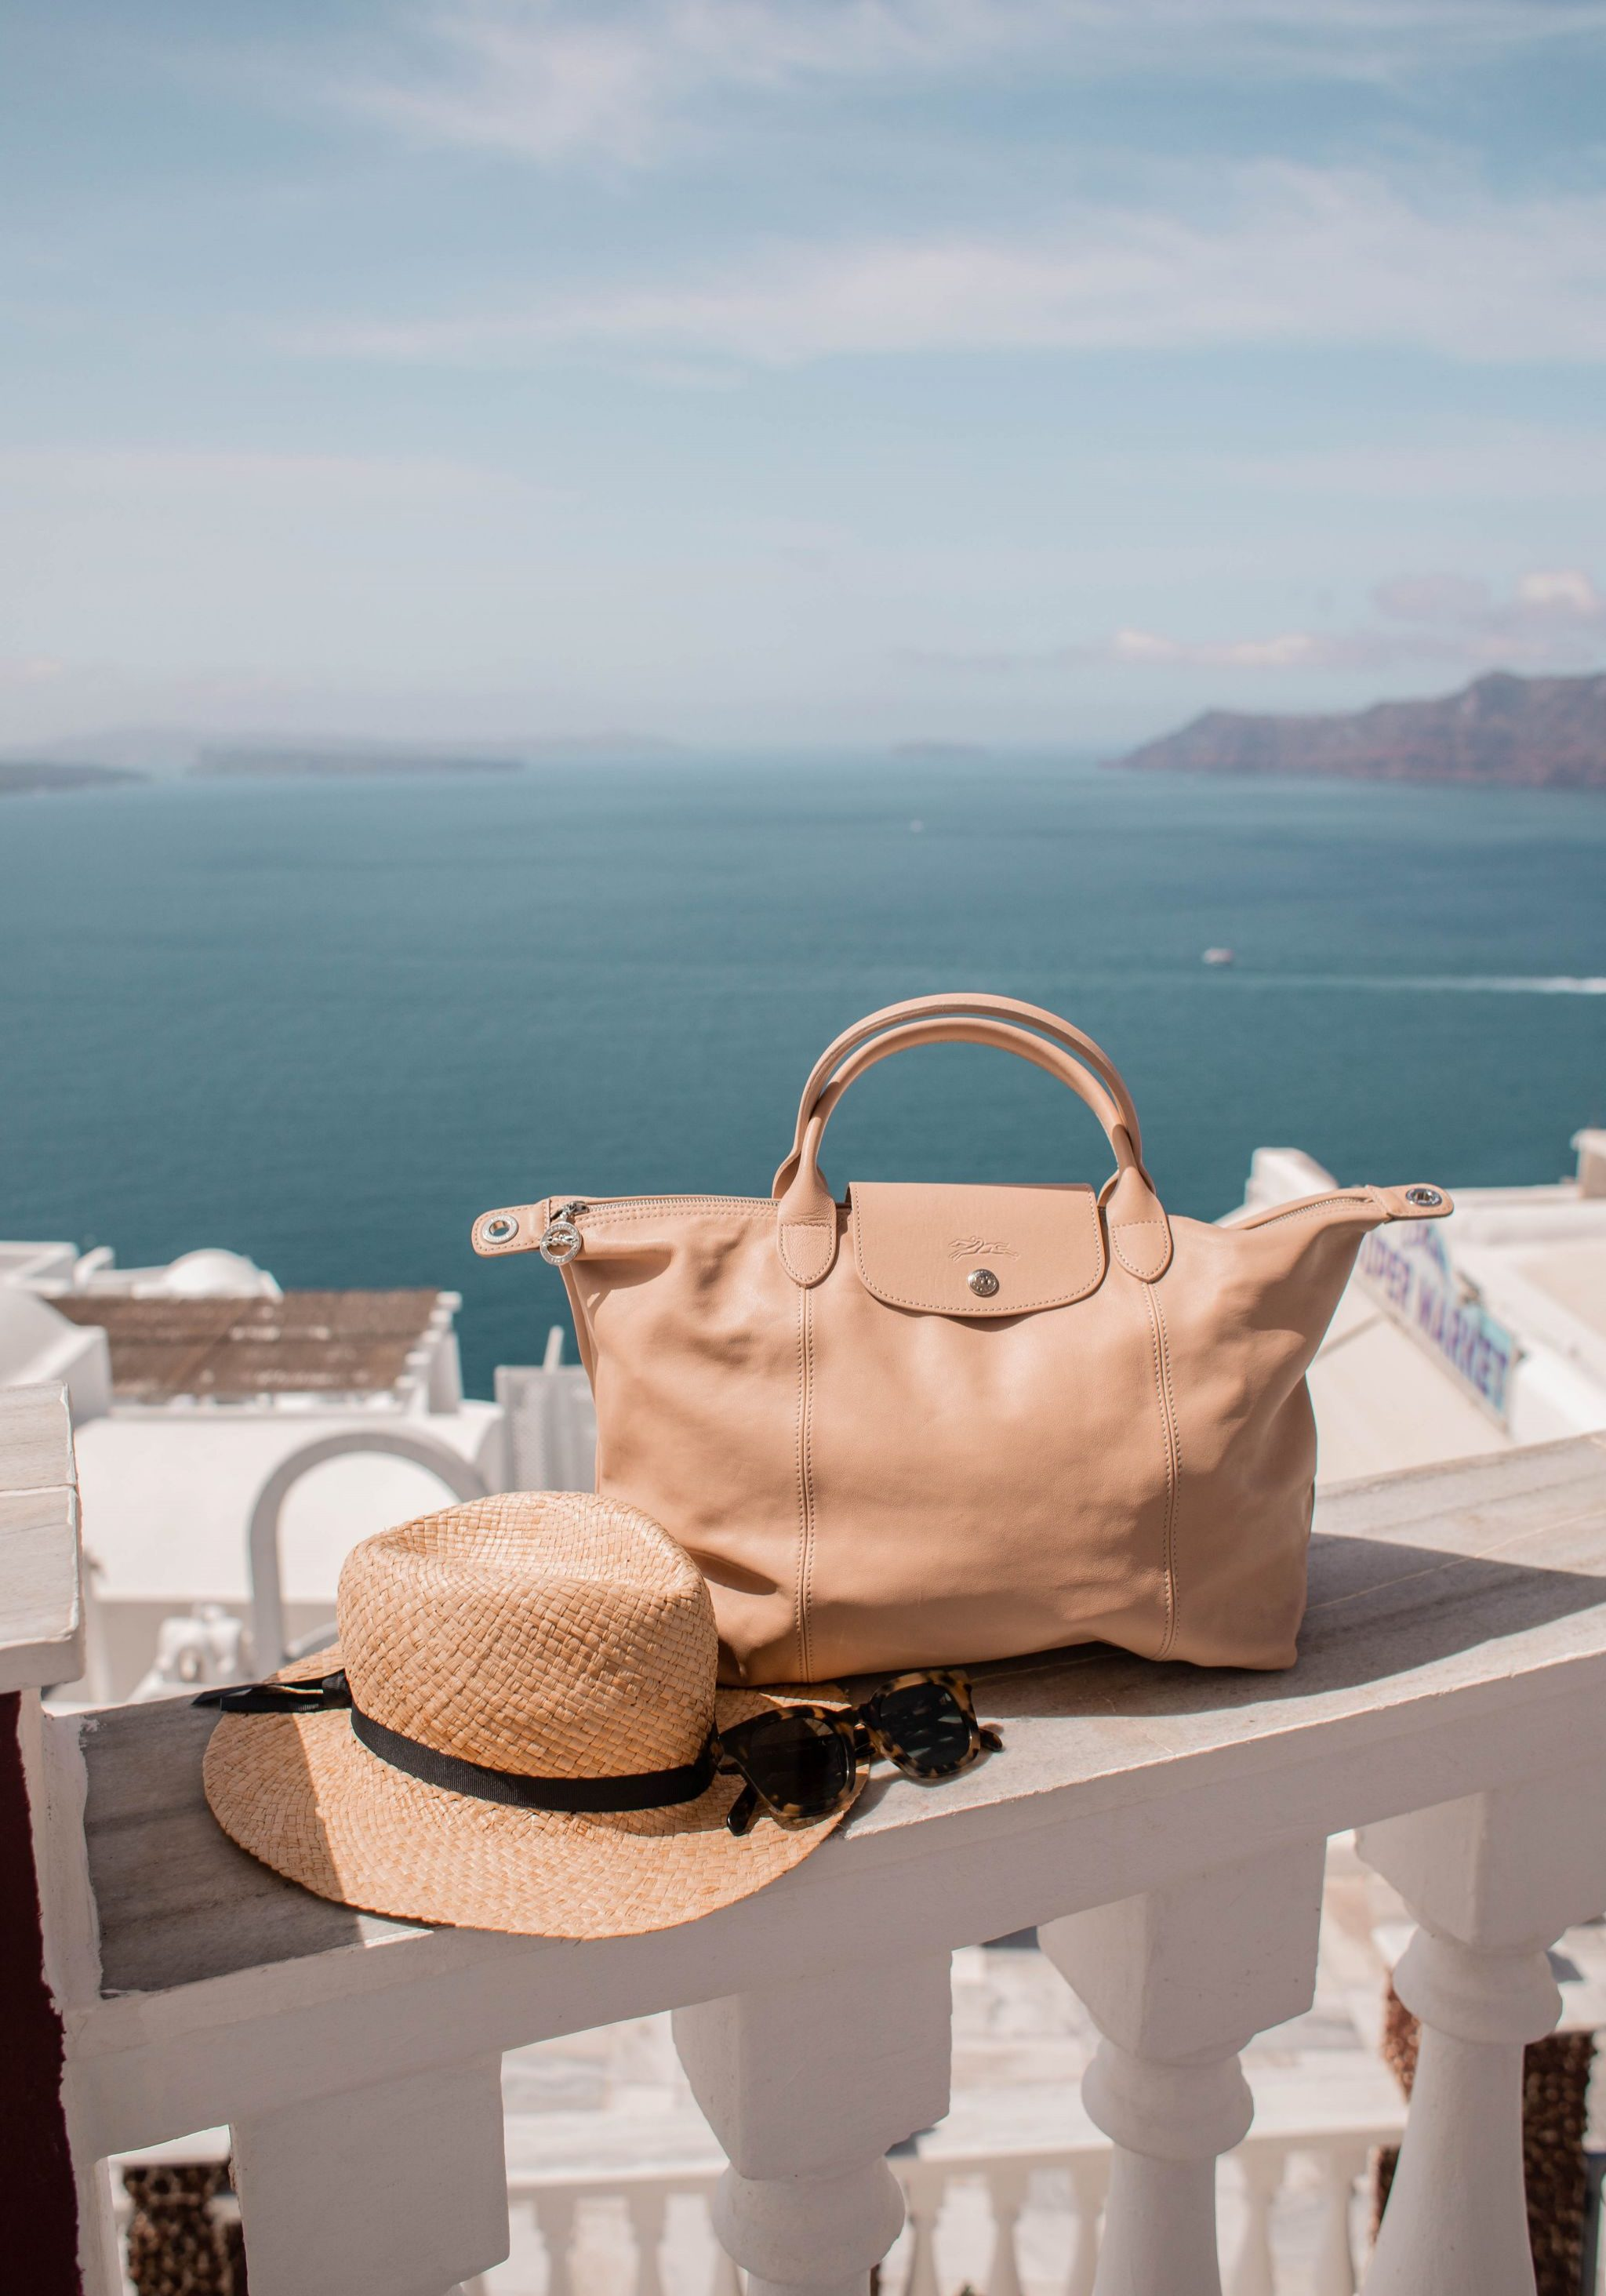 hannah layford brandalley longchamp leather bag santorini